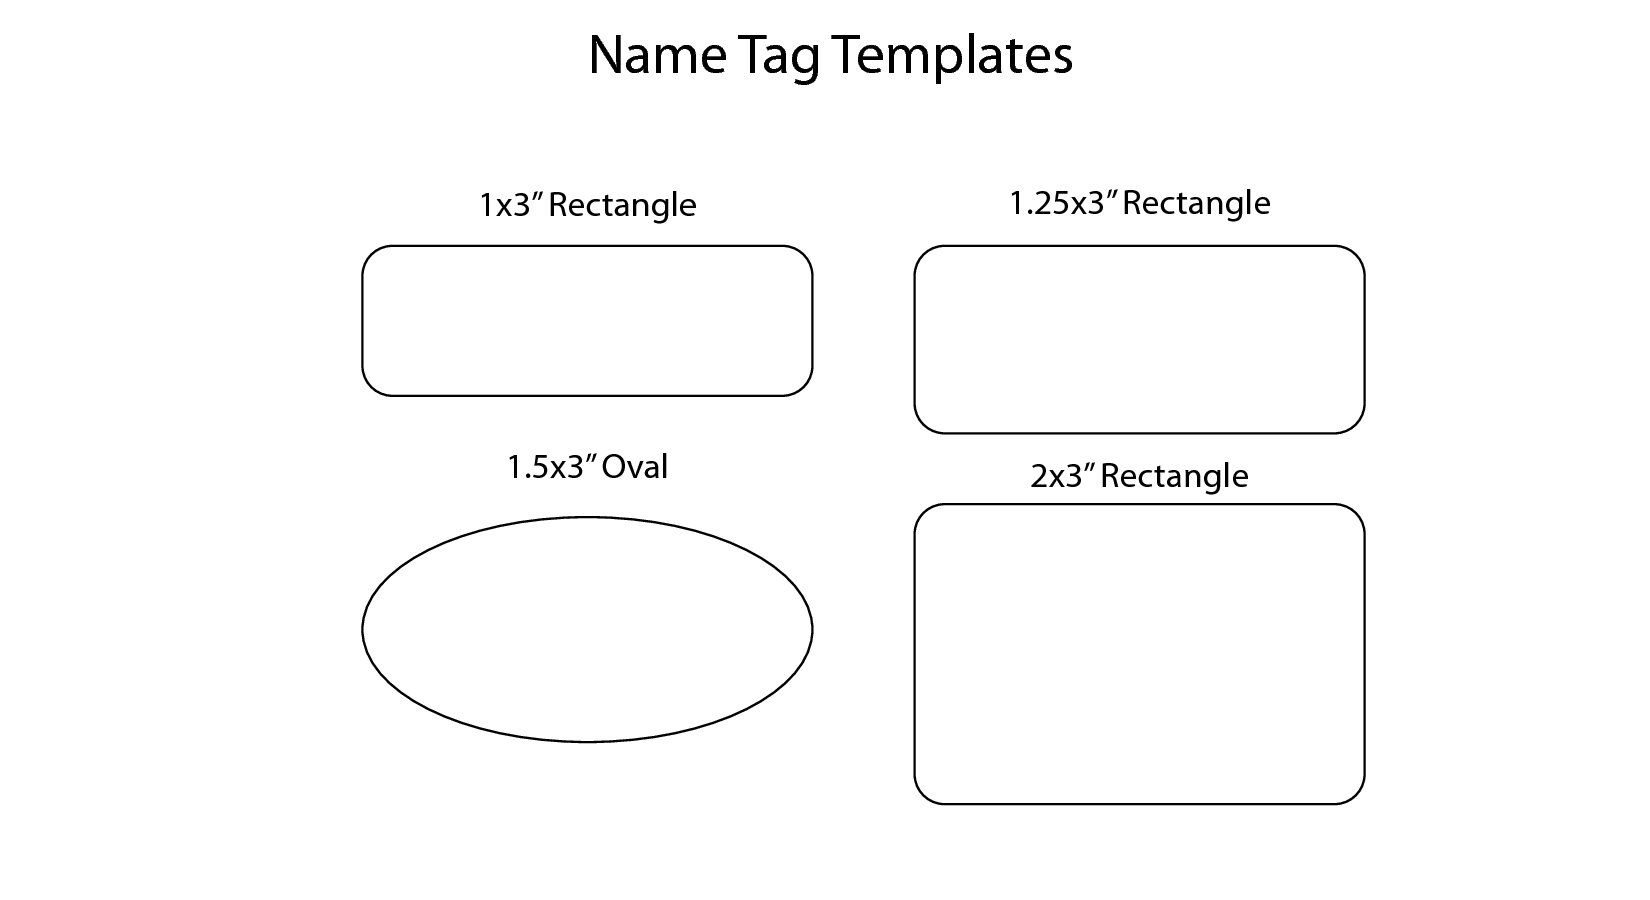 Desk name tag template word hostgarcia for Name badges templates microsoft word